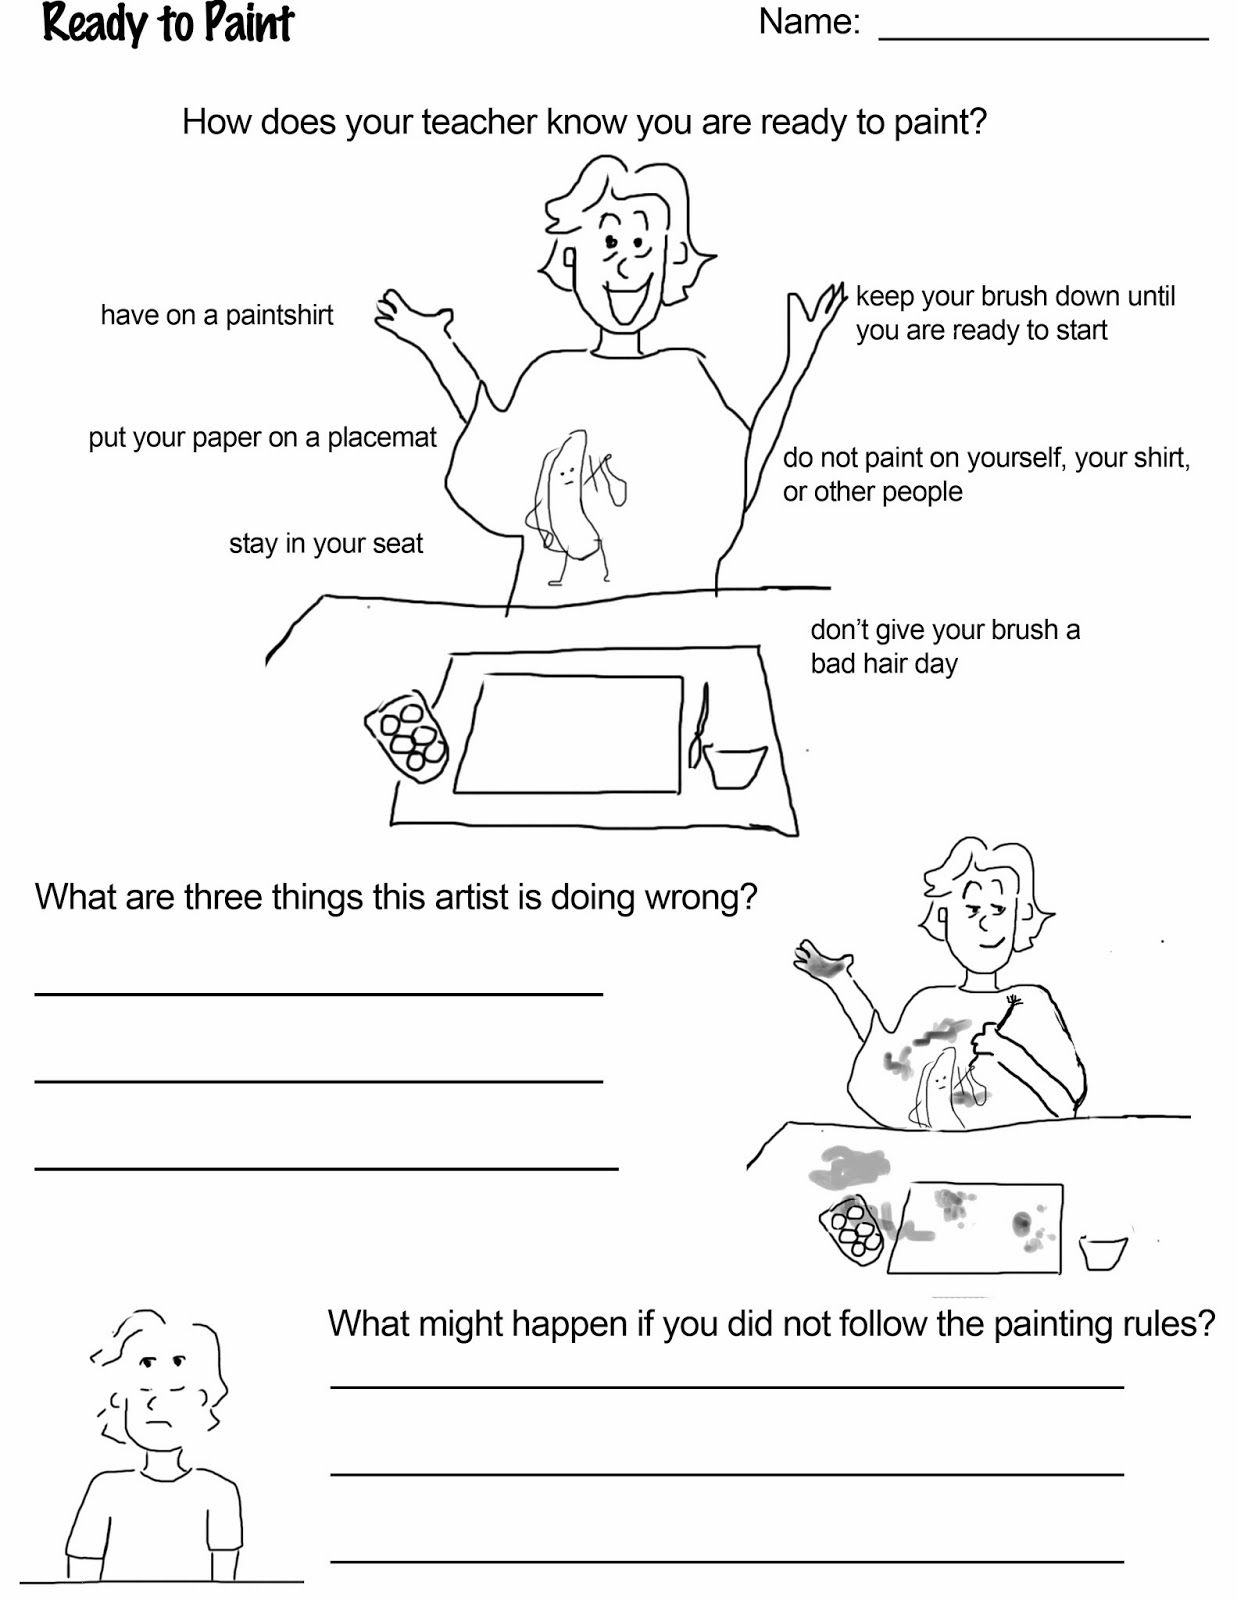 Ready To Paint Freebie Download For Art Class Reinforce Rules And Routine For Getting Ready To